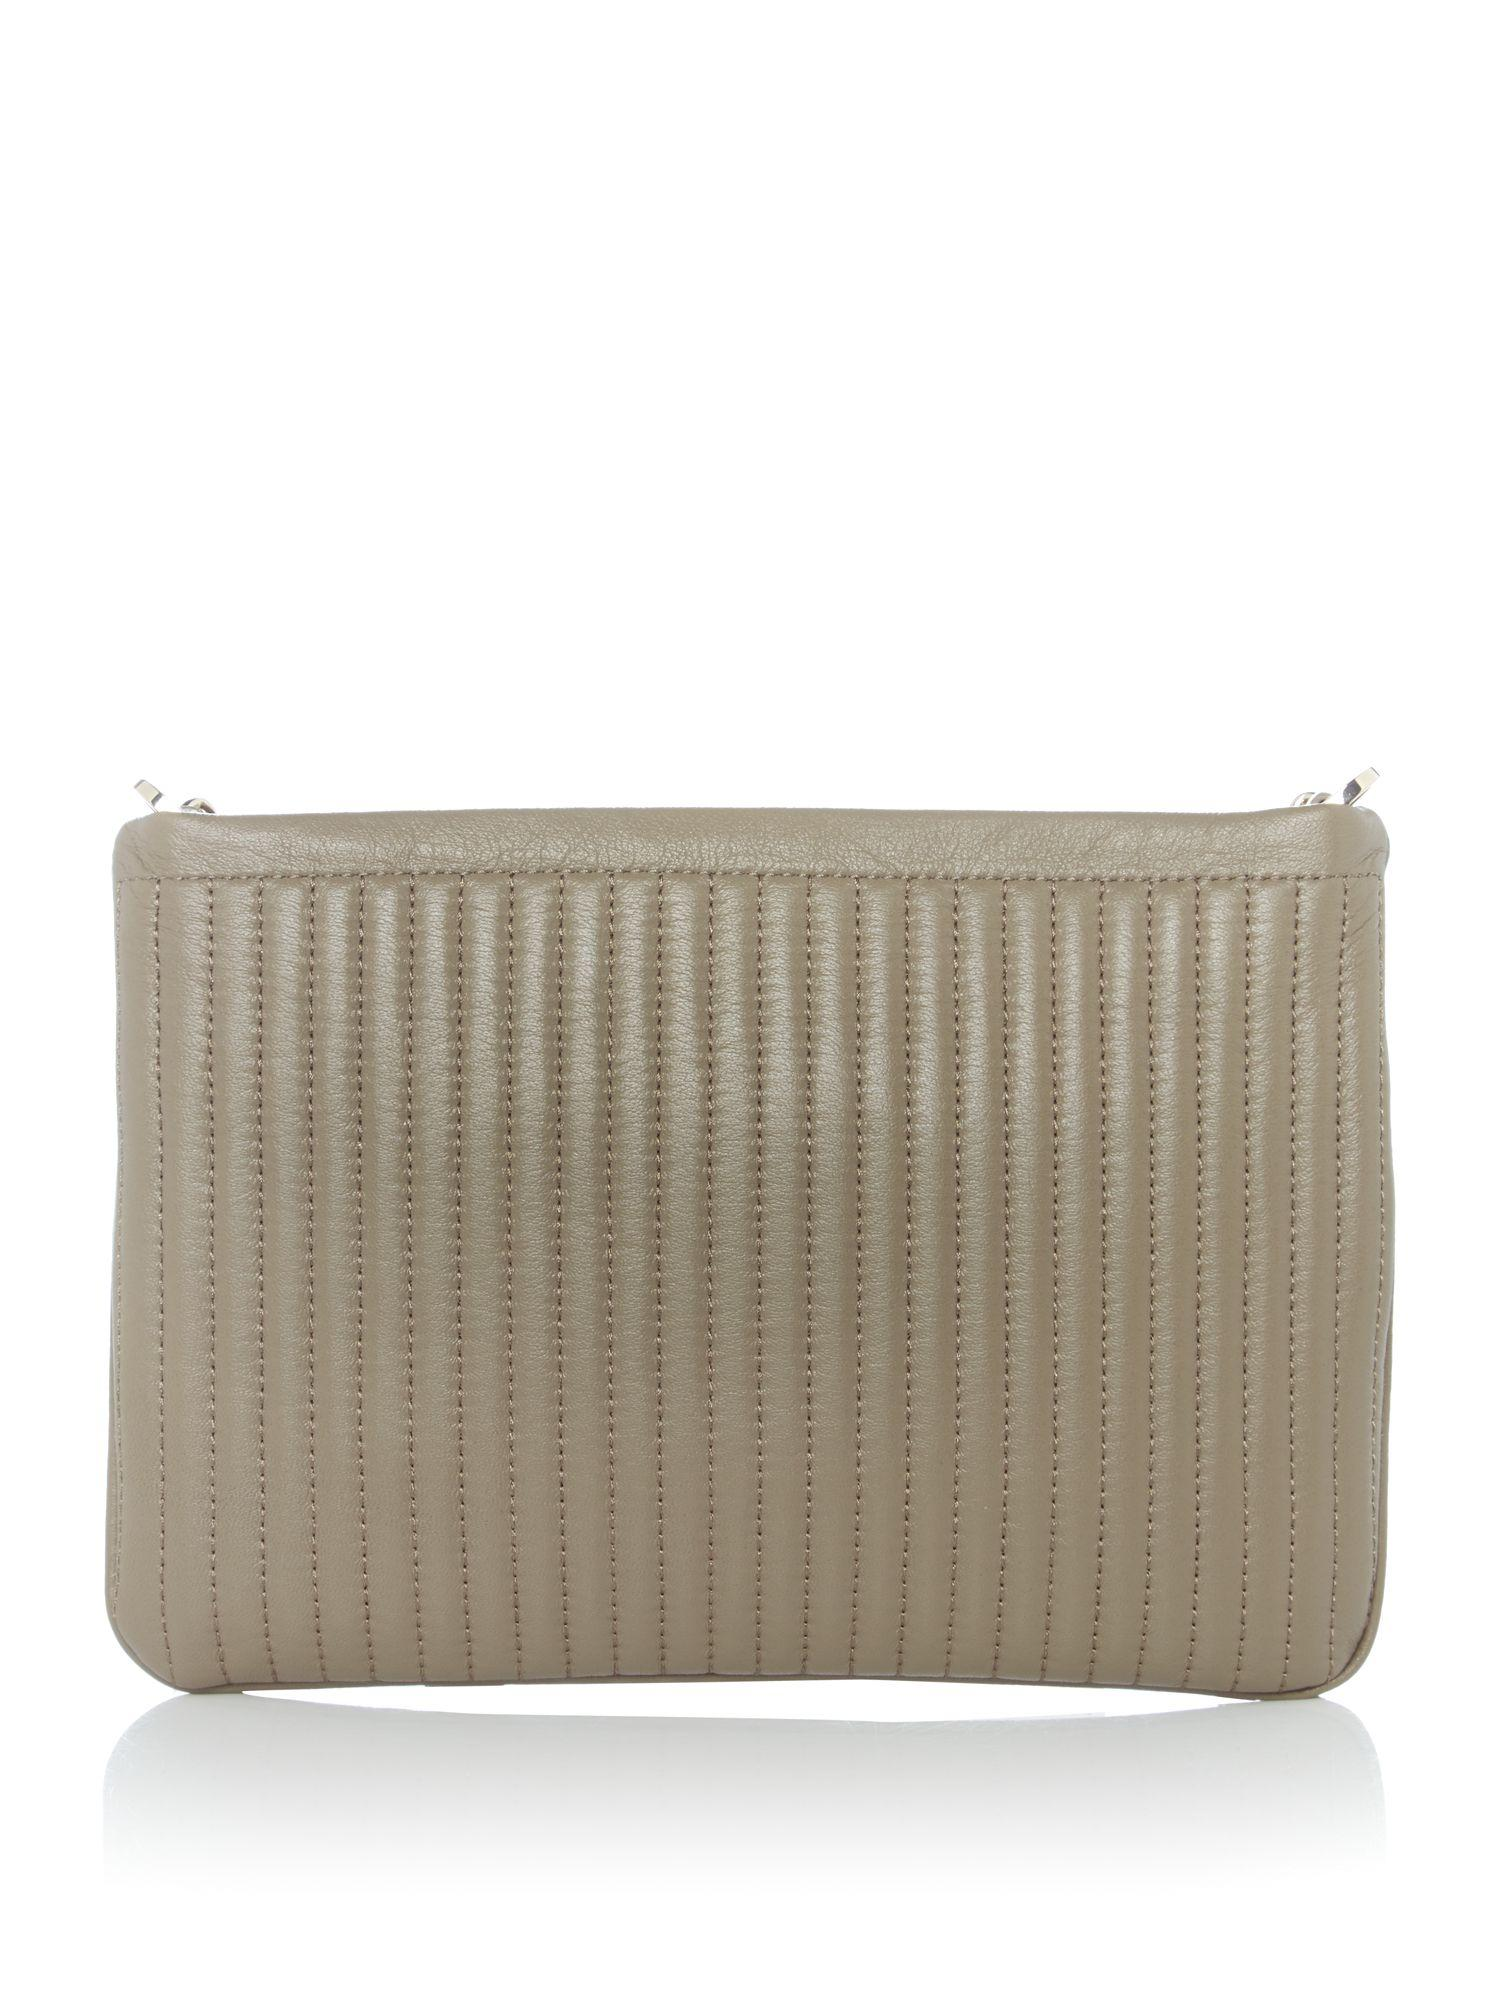 DKNY Leather Pinstripe Small Crossbody Bag in Taupe (Brown)